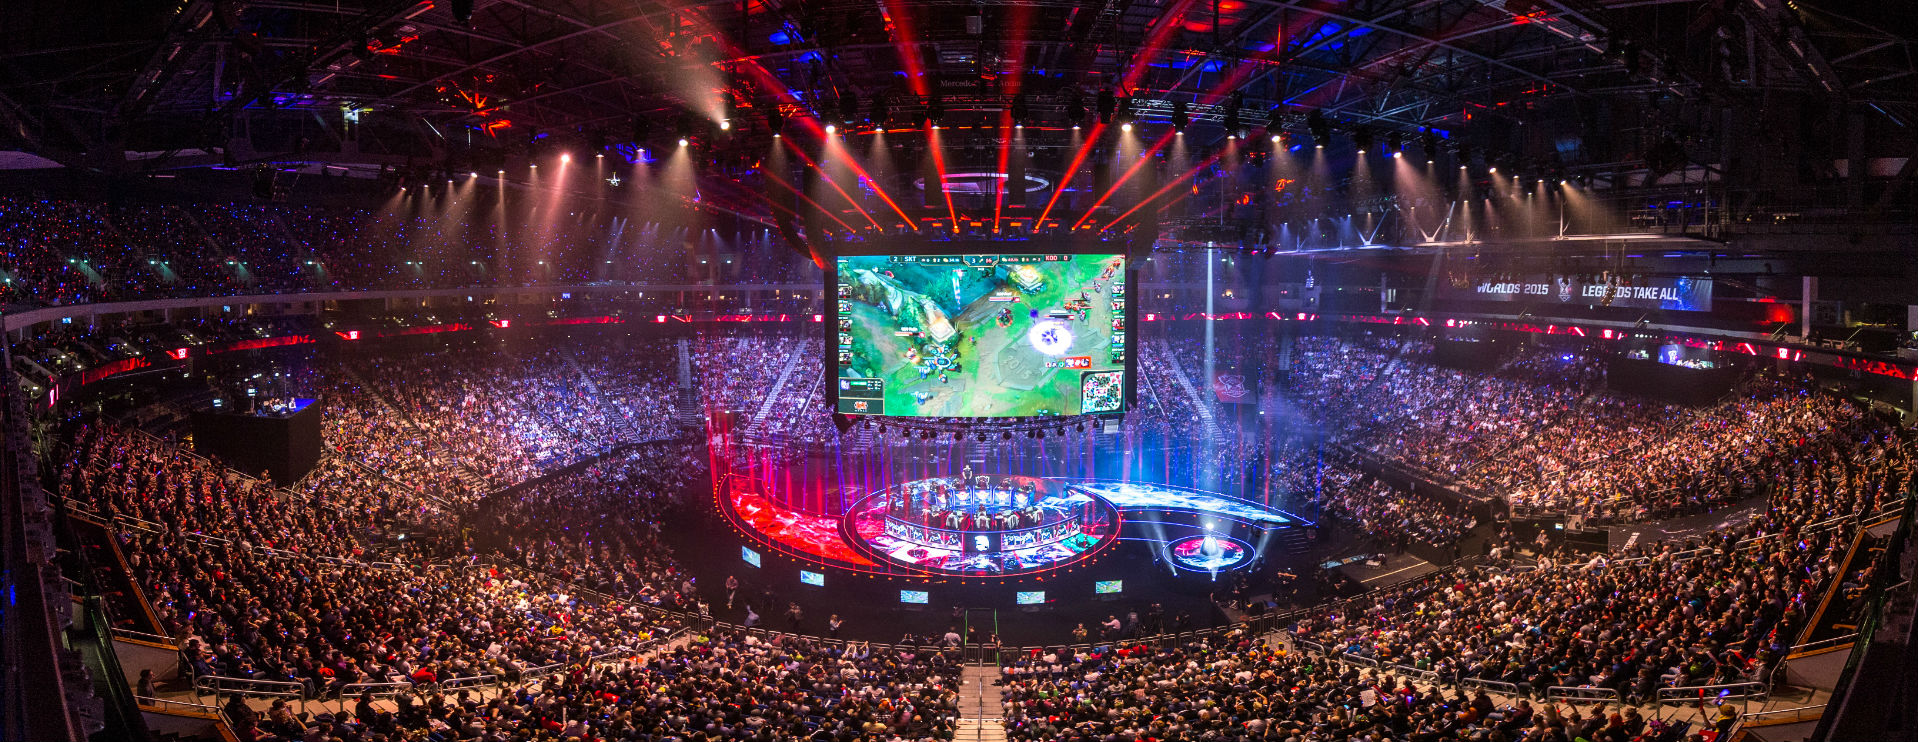 Photo shows a League of Legends World Championship